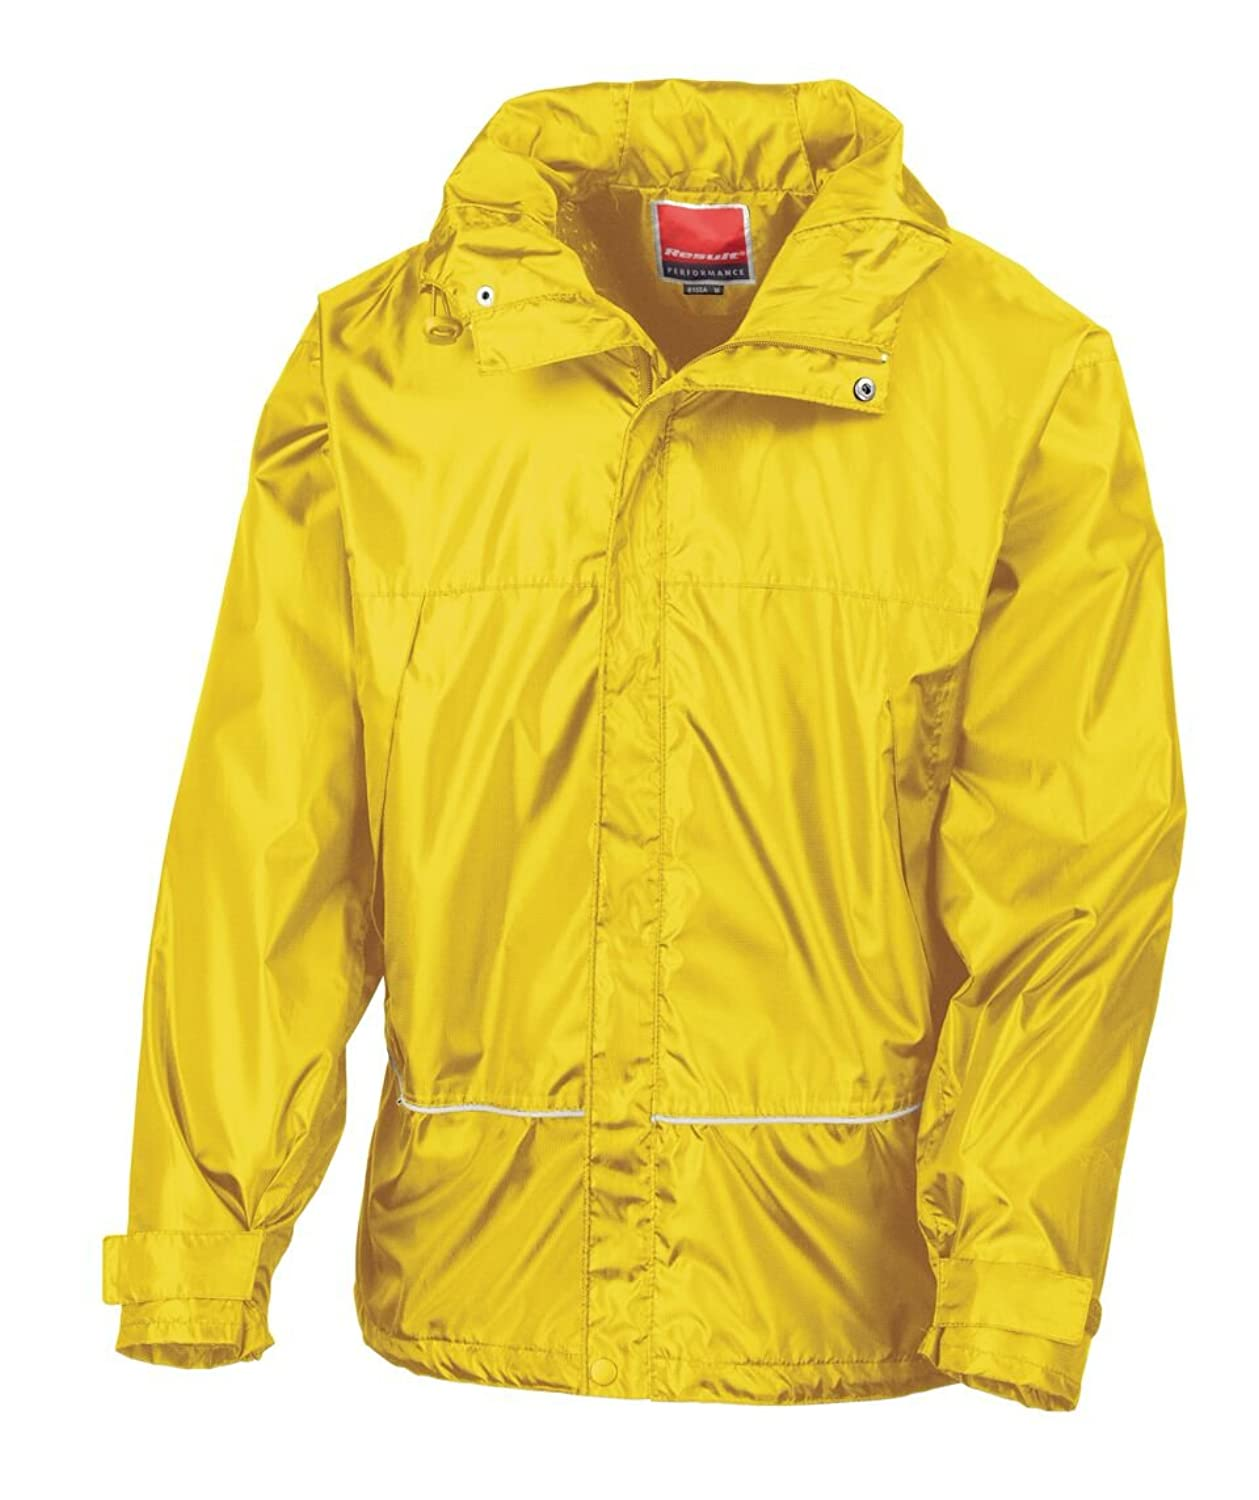 Result Pro-coach jacket Mens / Gents Plus Free Internet Traders Car Air Freshener Small, Medium, Large, Extra Large, 2XL